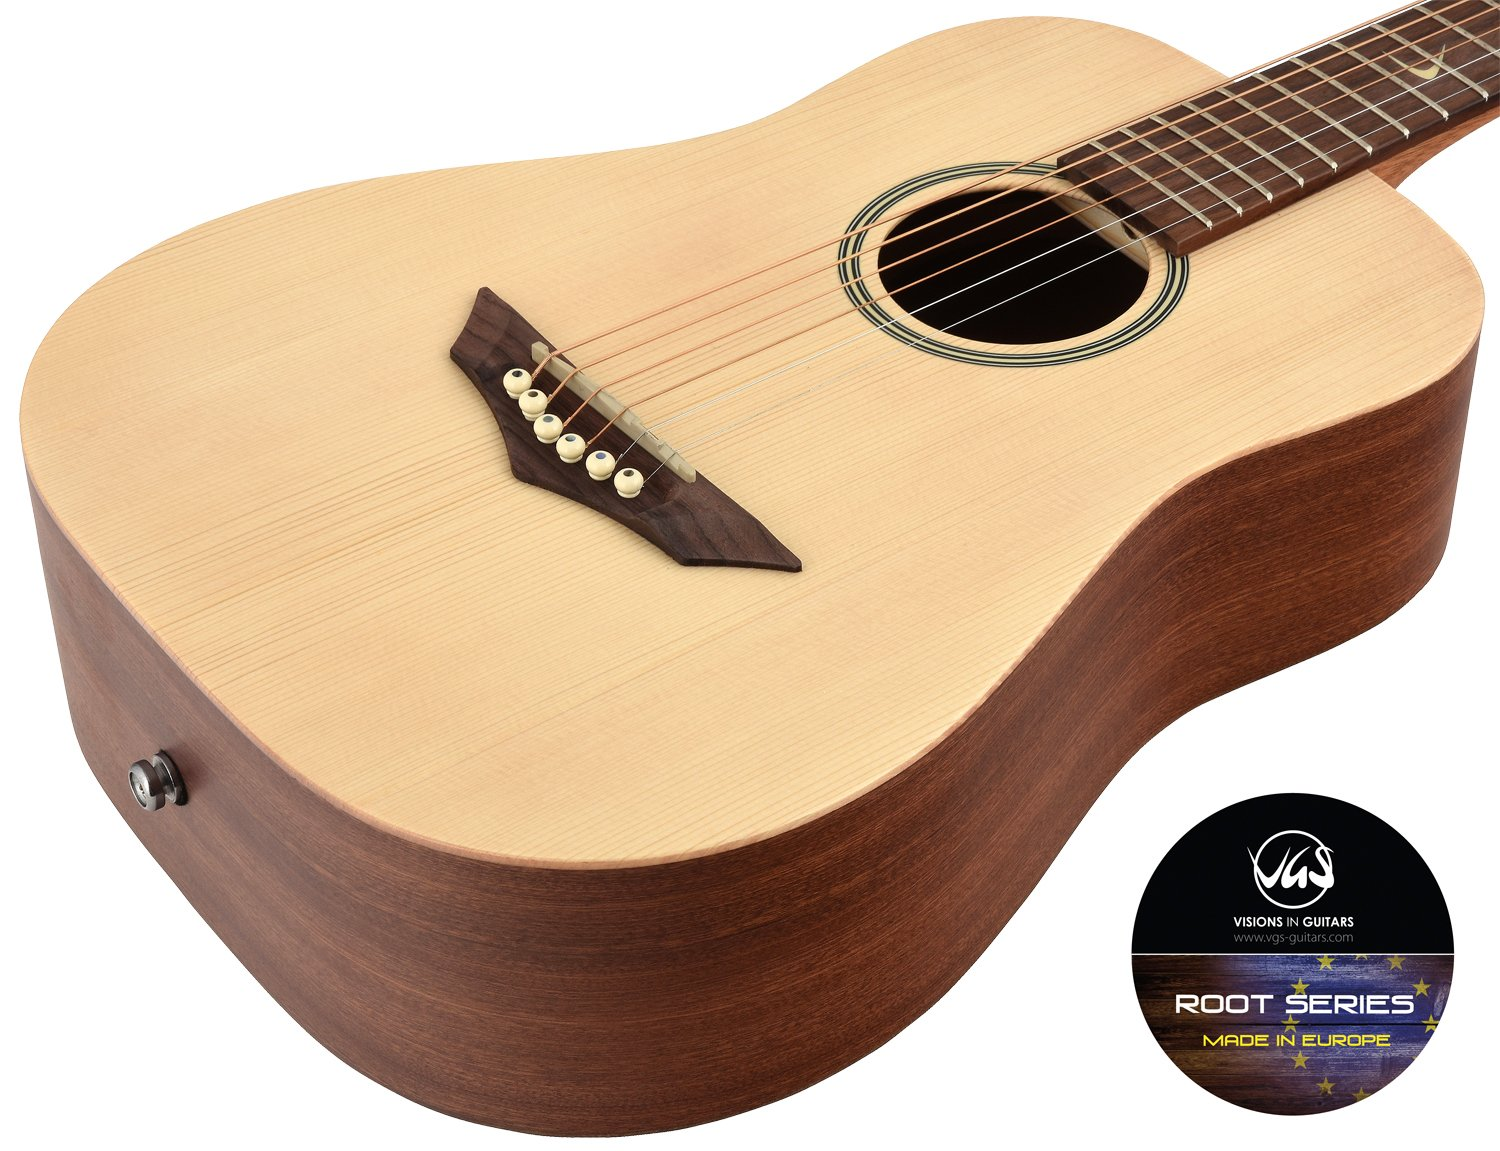 vgs rt de voyage root fabrique en europe mini guitare folk dreadnought